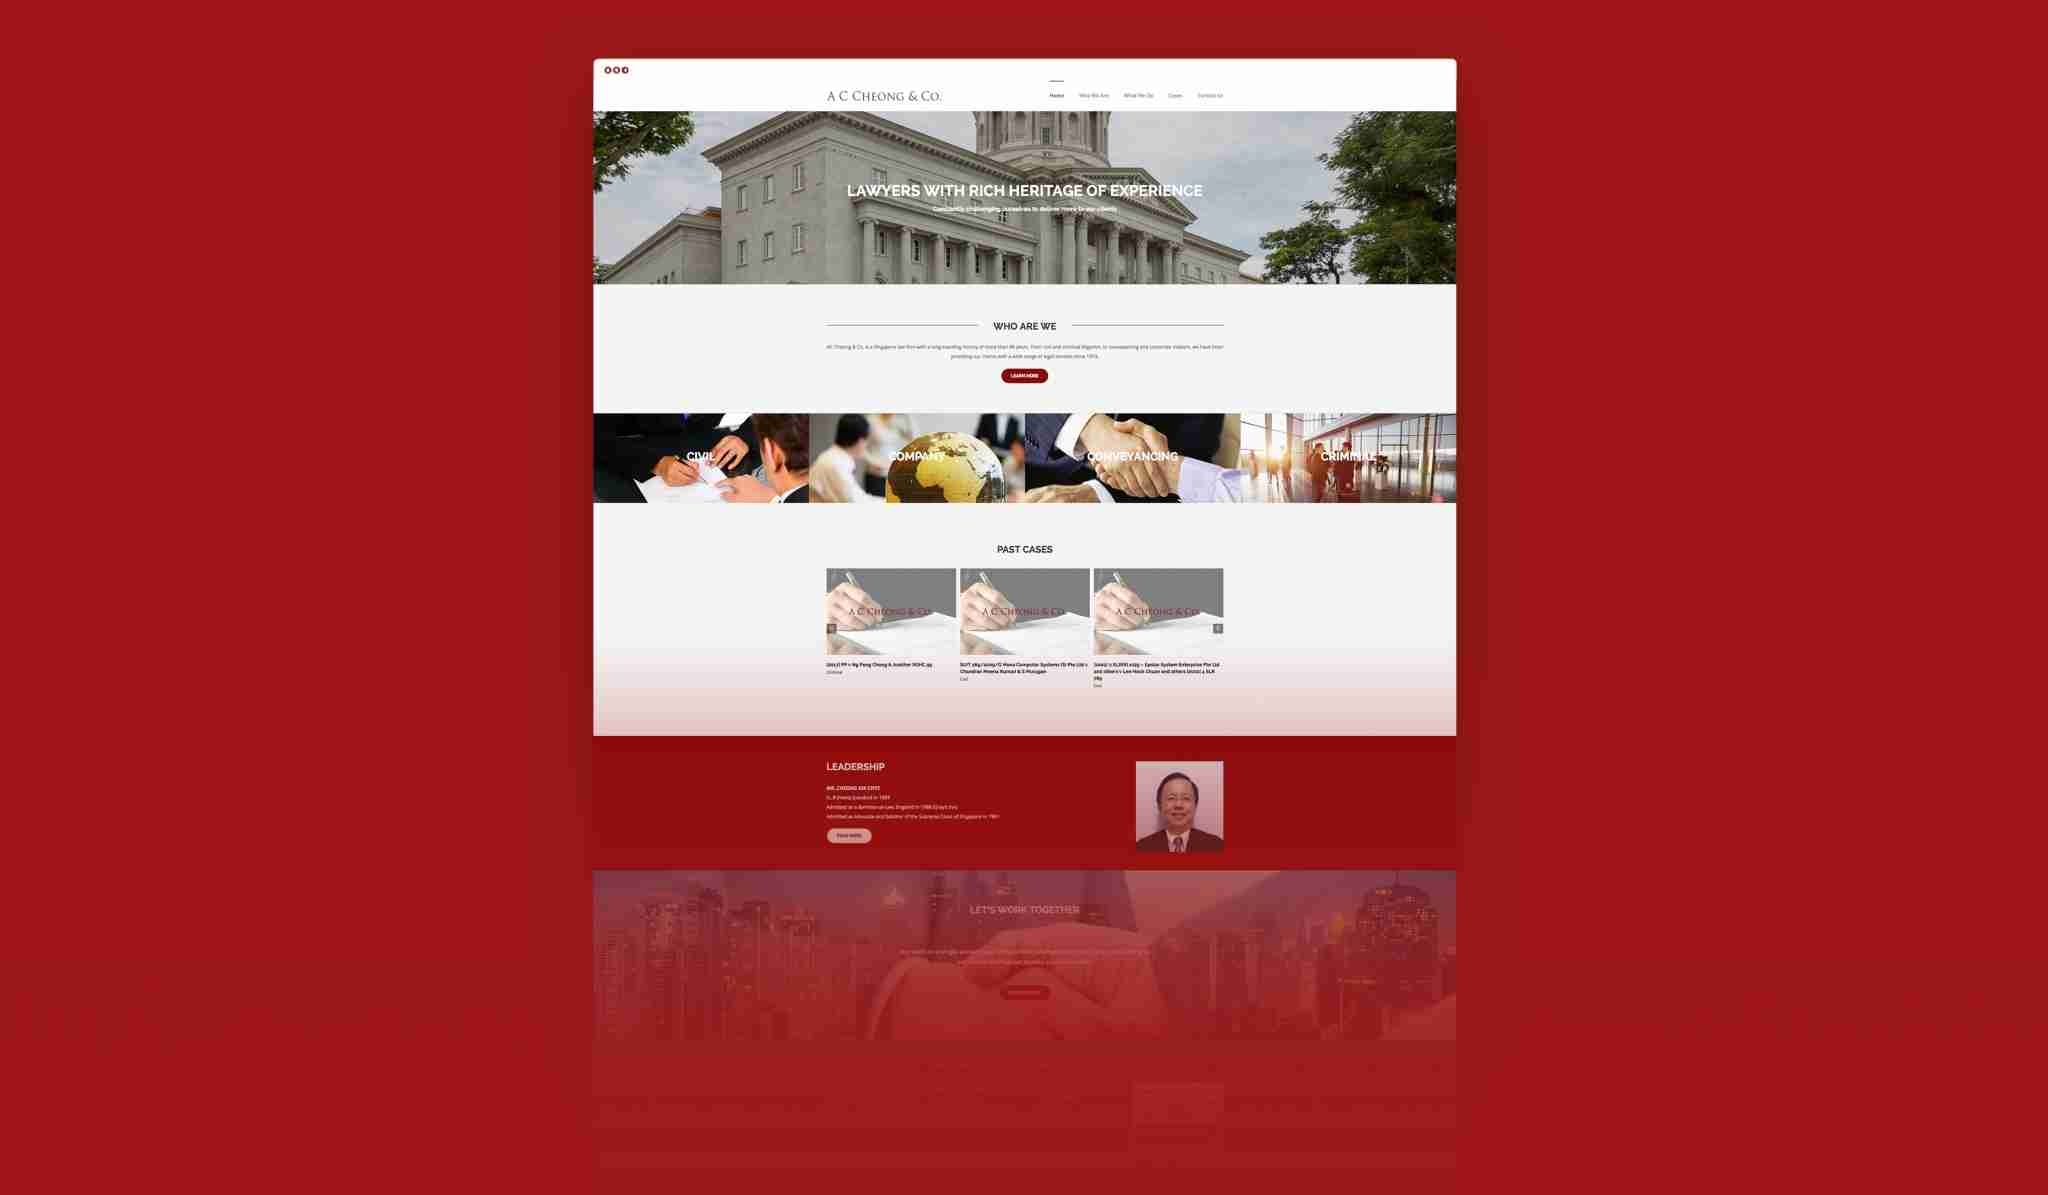 ac cheong full web design